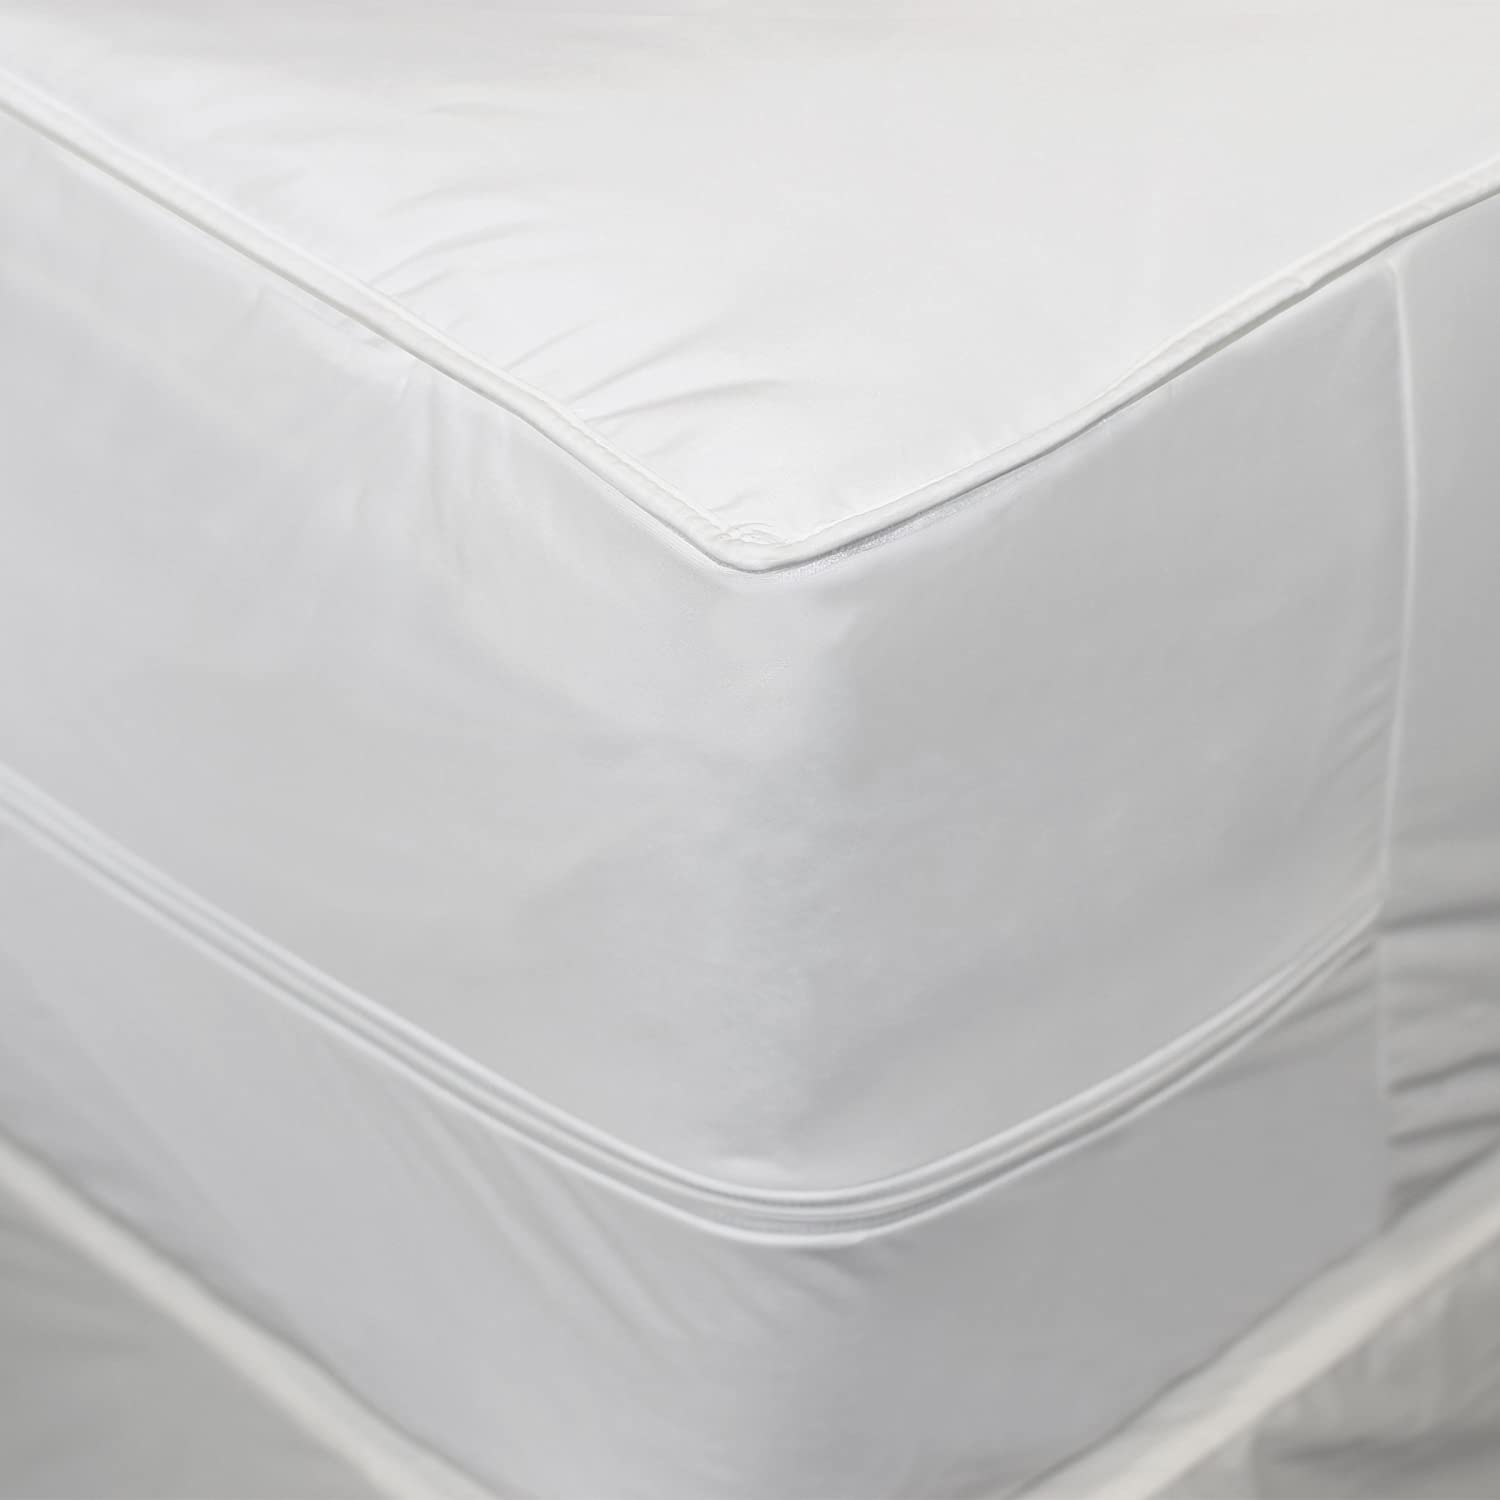 Aller-Ease 2-in-1 Mattress Pad with Removable Hot Water Washable Top Pad, California King